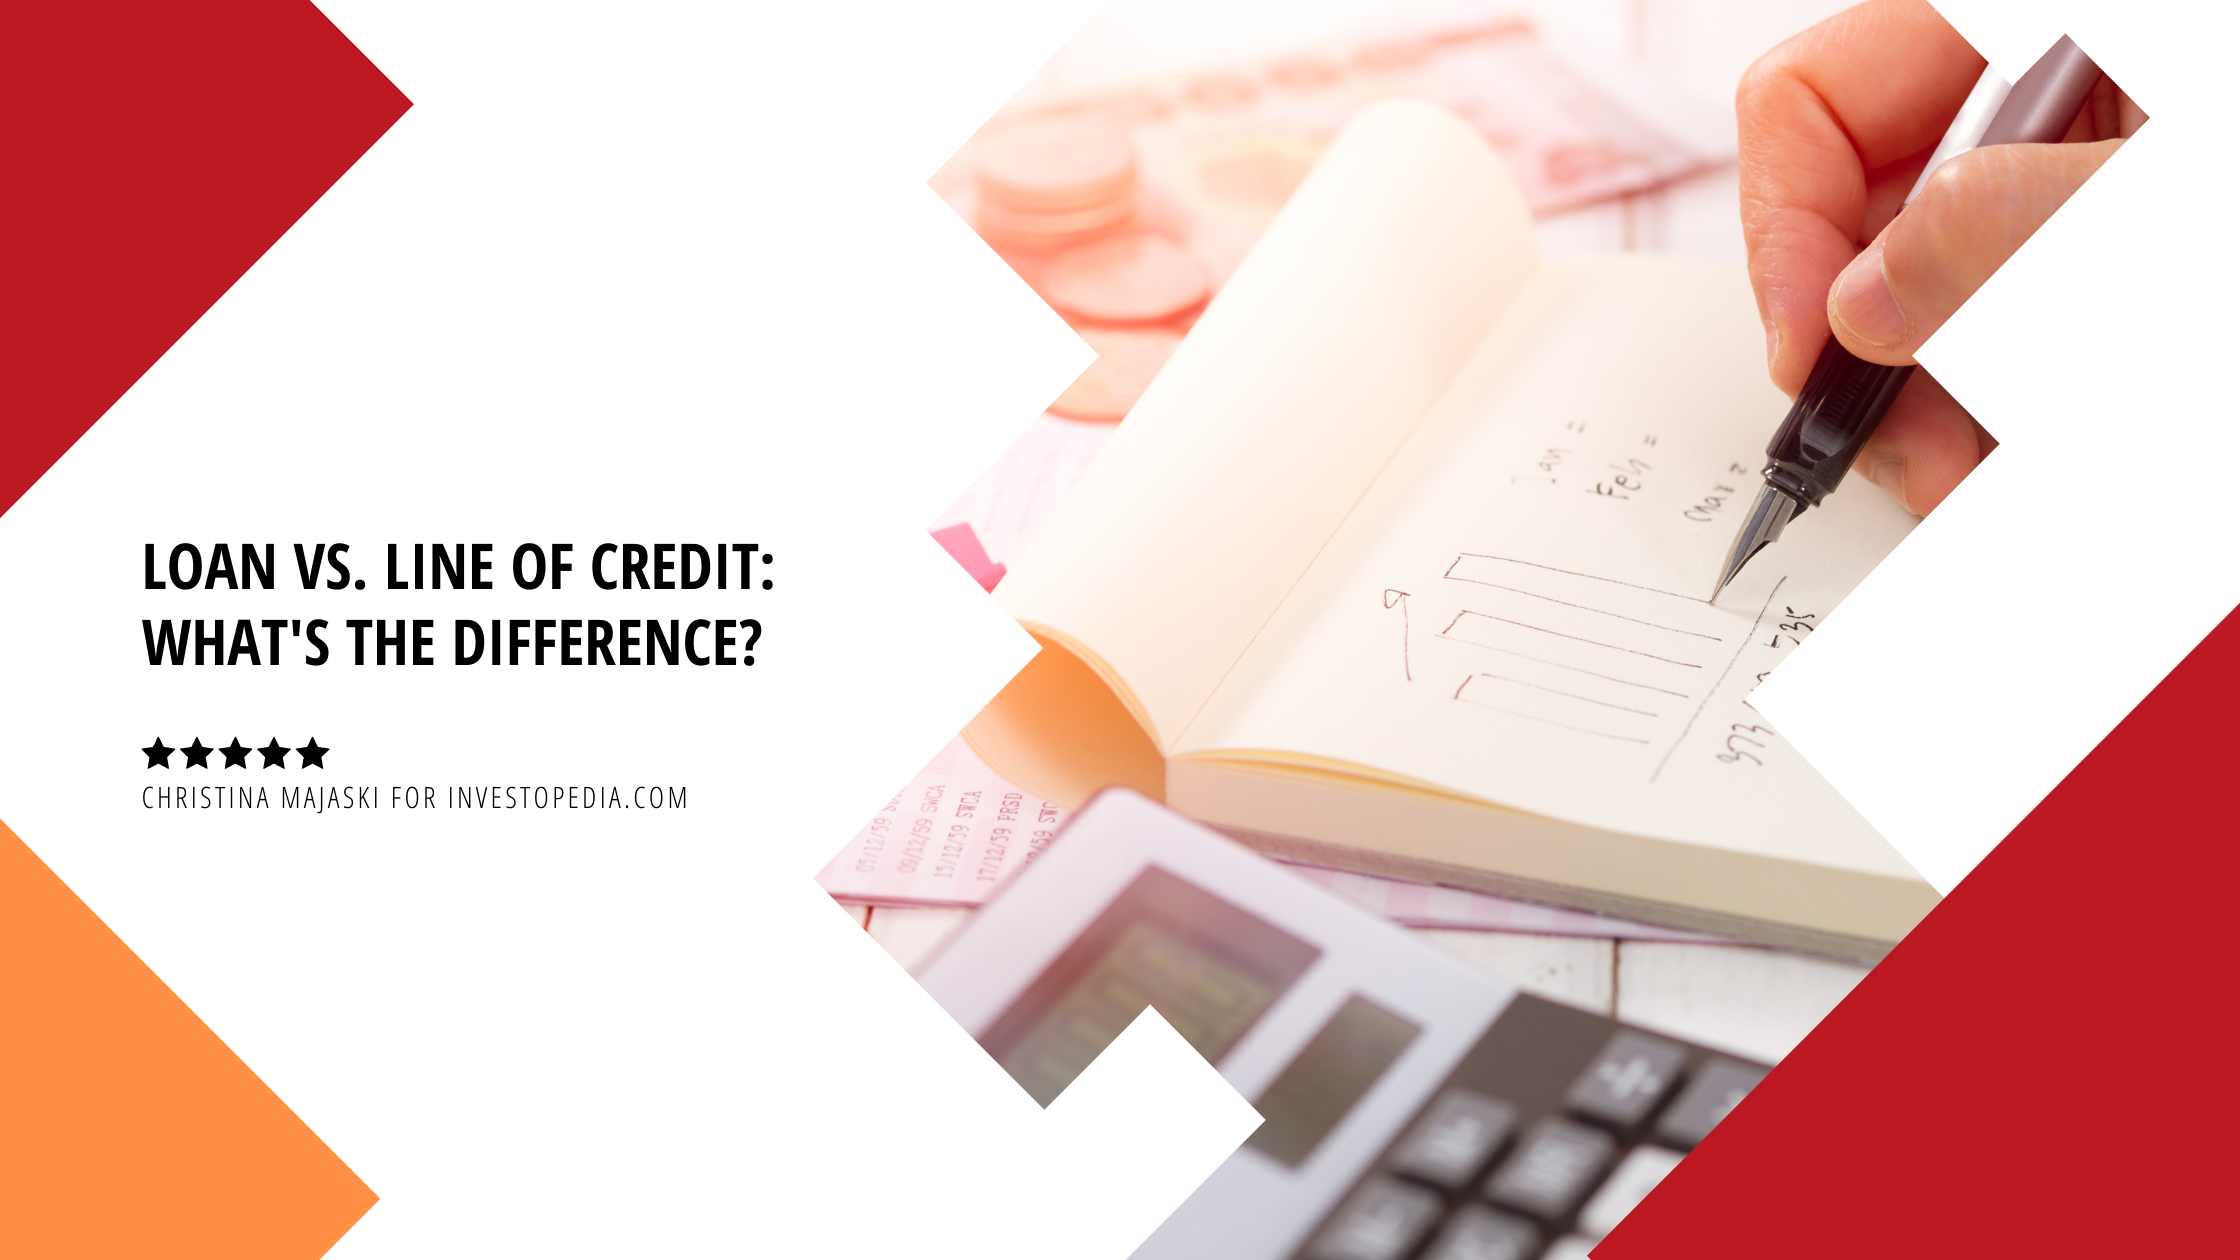 Loan vs. Line of Credit: What's the Difference?